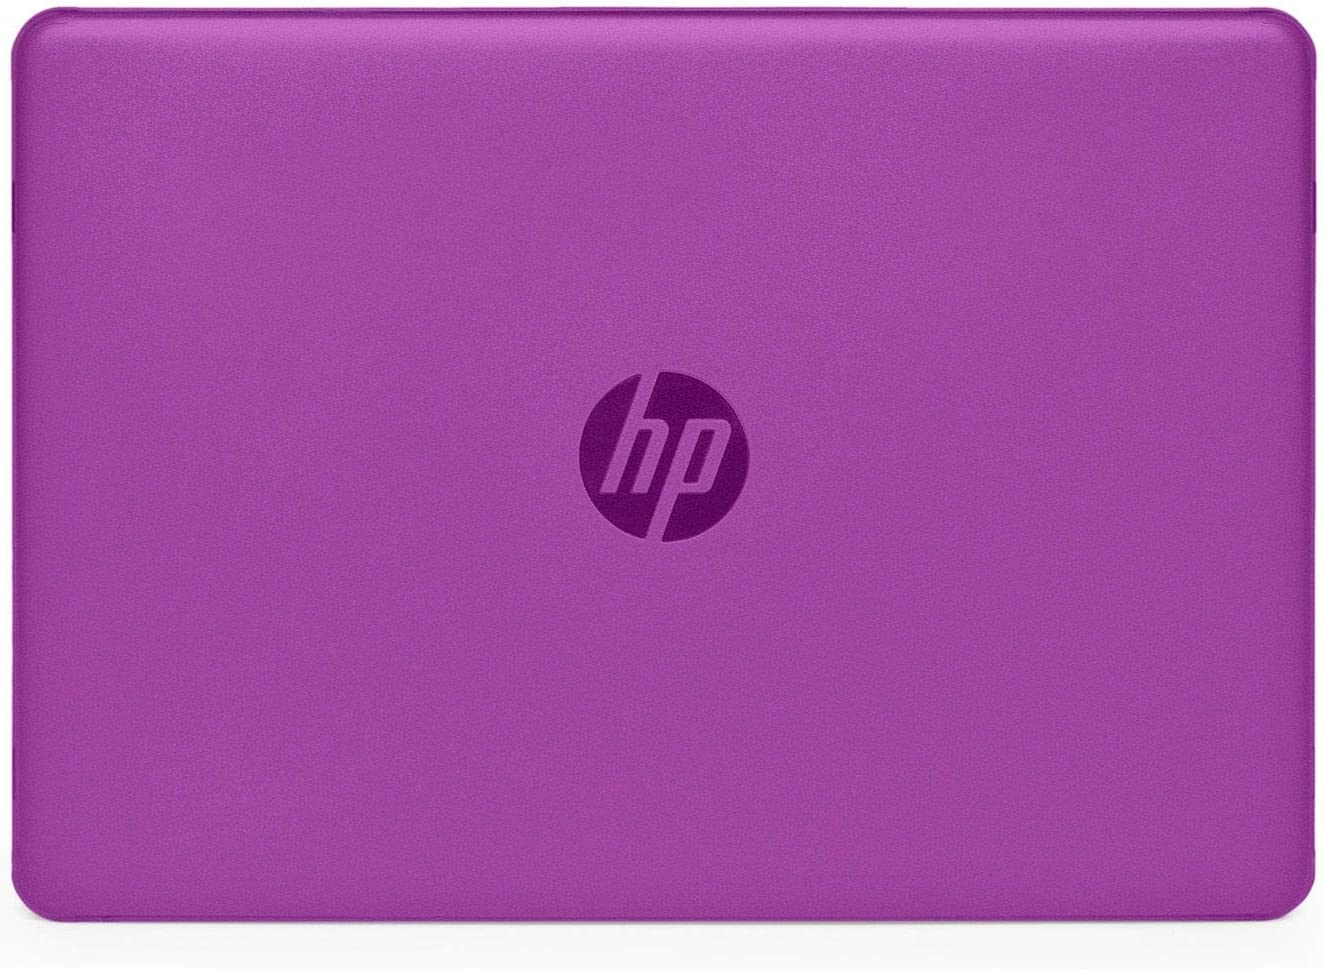 """mCover Hard Shell Case for 2020 14"""" HP Pavilion 14-DQxxxx Series (NOT Compatible with Other HP Pavilion Series) laptops (Purple)"""